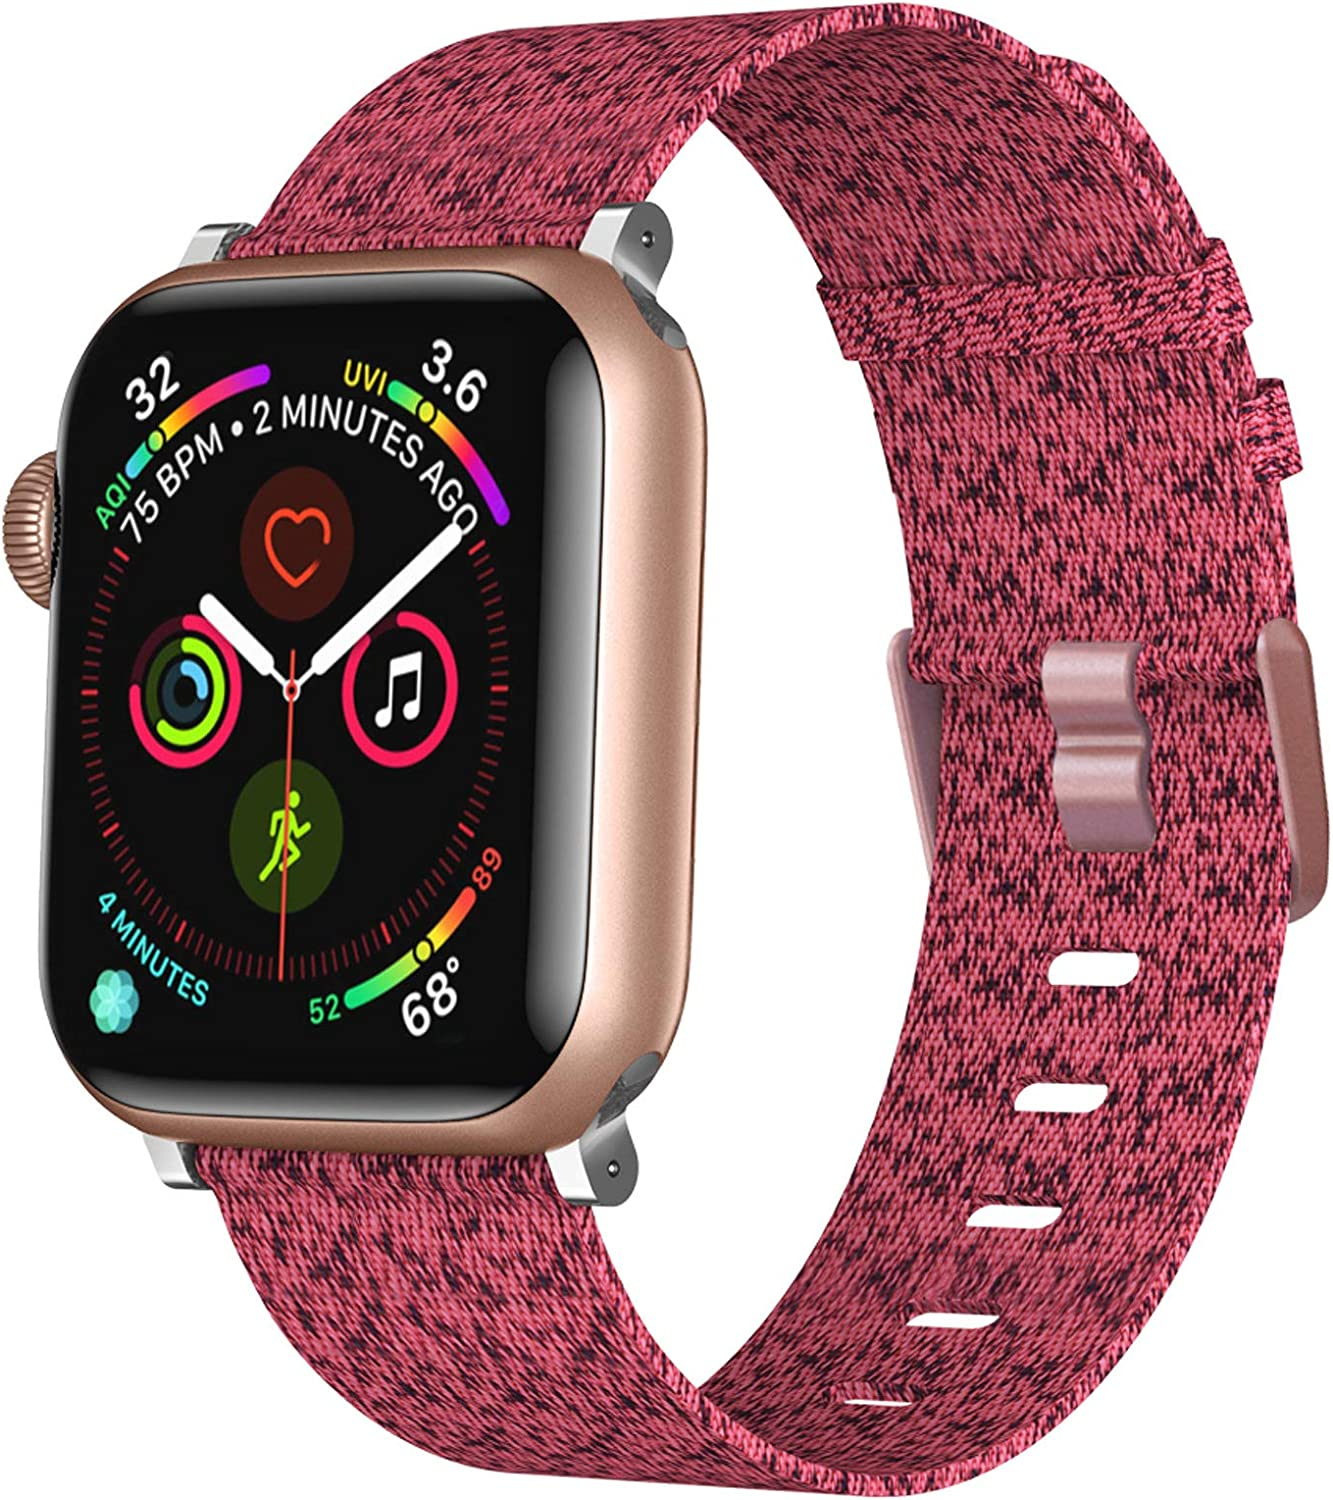 XIMU Bands Compatible with Apple Watch Band 38mm 40mm 42mm 44mm, Soft Woven Fabric Replacement Band Quick Release Watch Strap Wristbands Accessories Women Men for iWatch Series 4/3/2/1